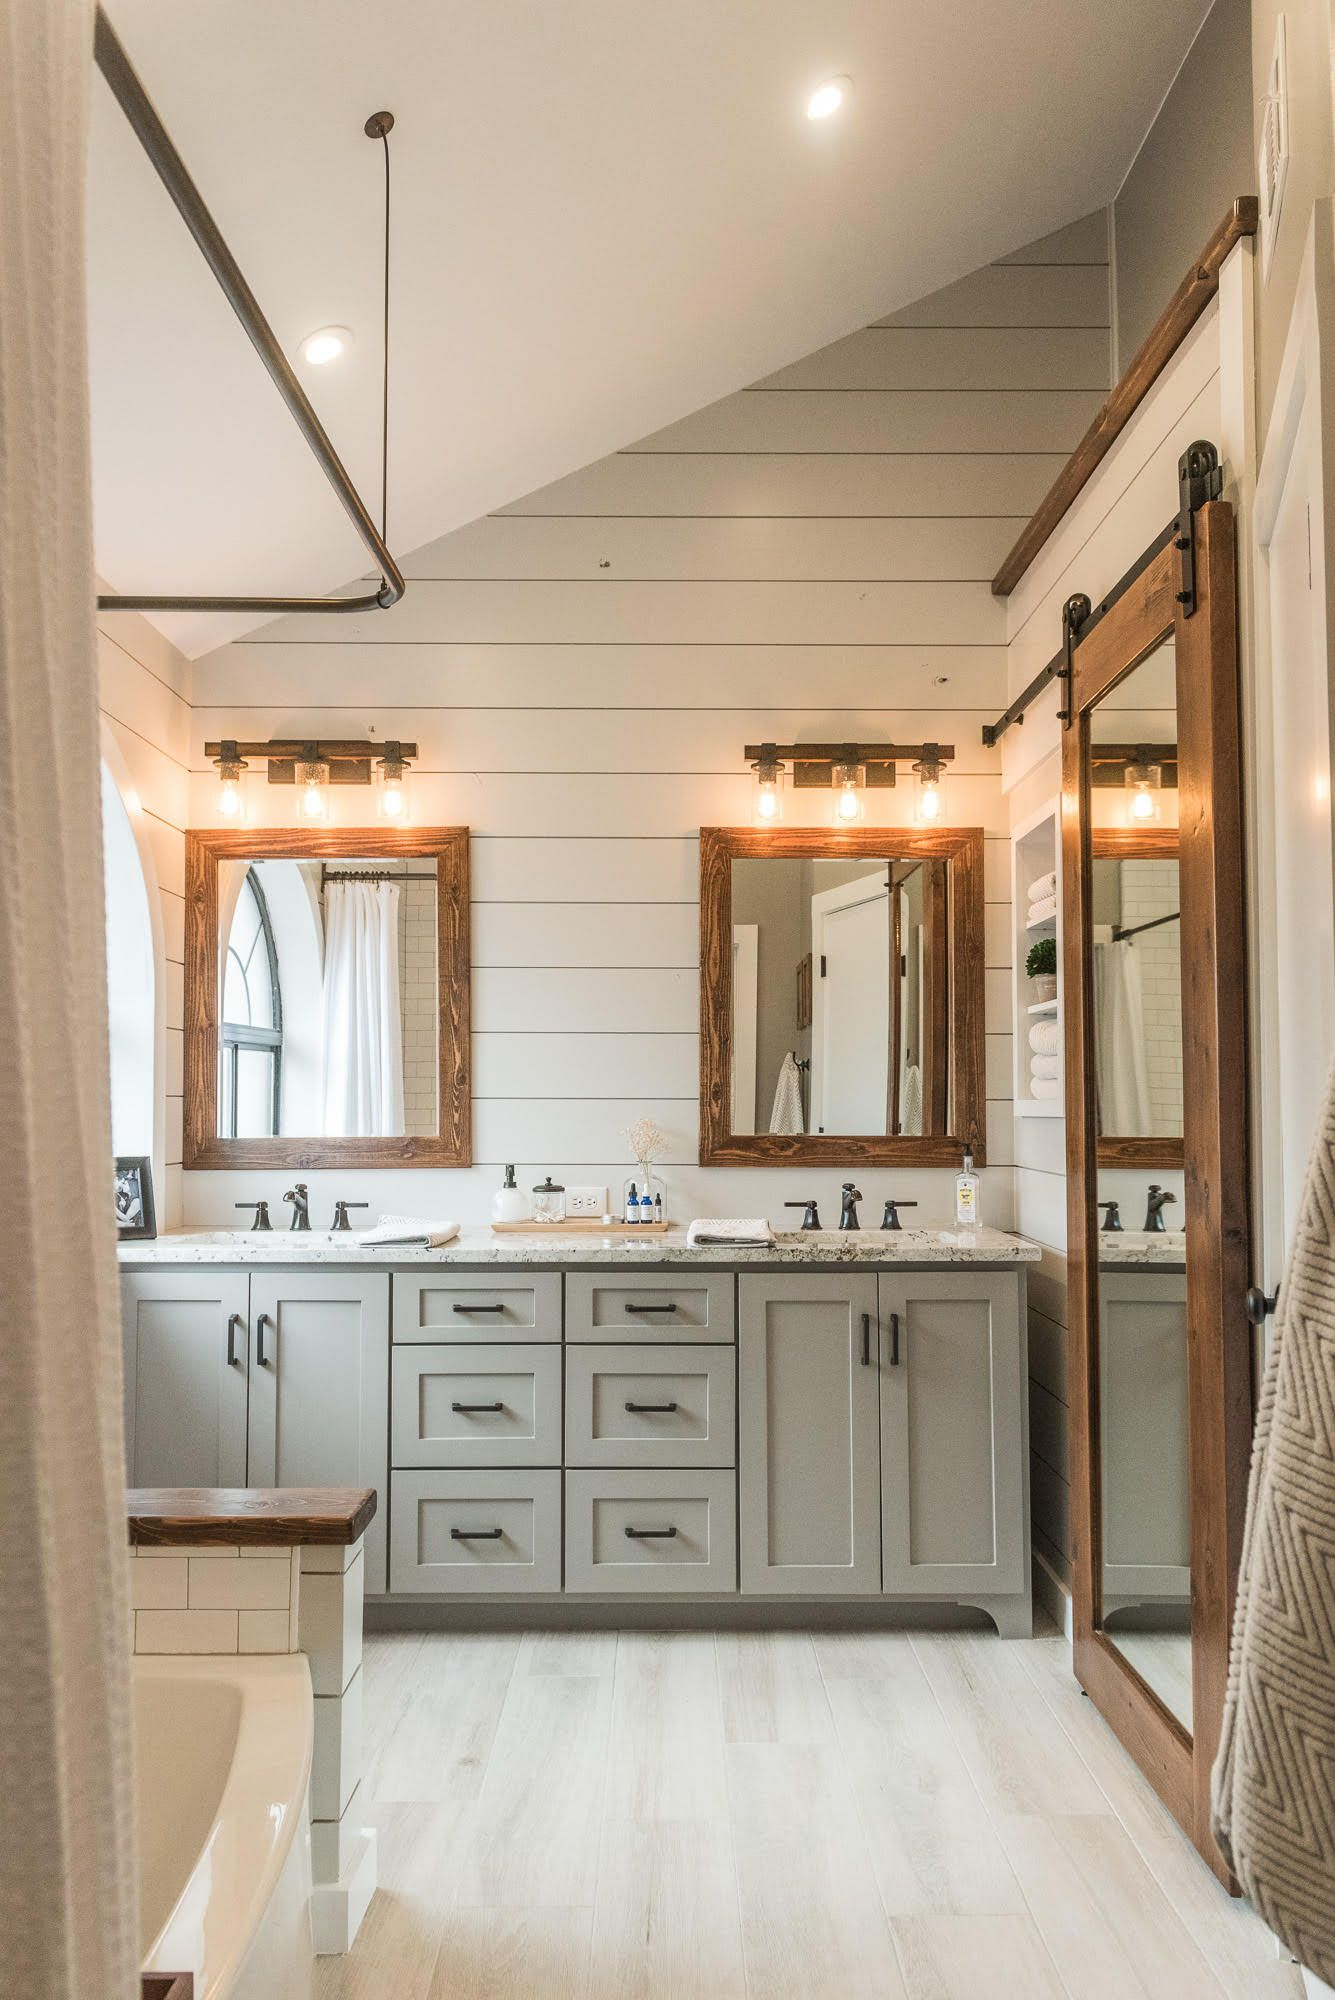 59 Best Farmhouse Wall Decor Ideas For Bathroom: Off White OR Lt-Medium Grey Shiplap & Walls